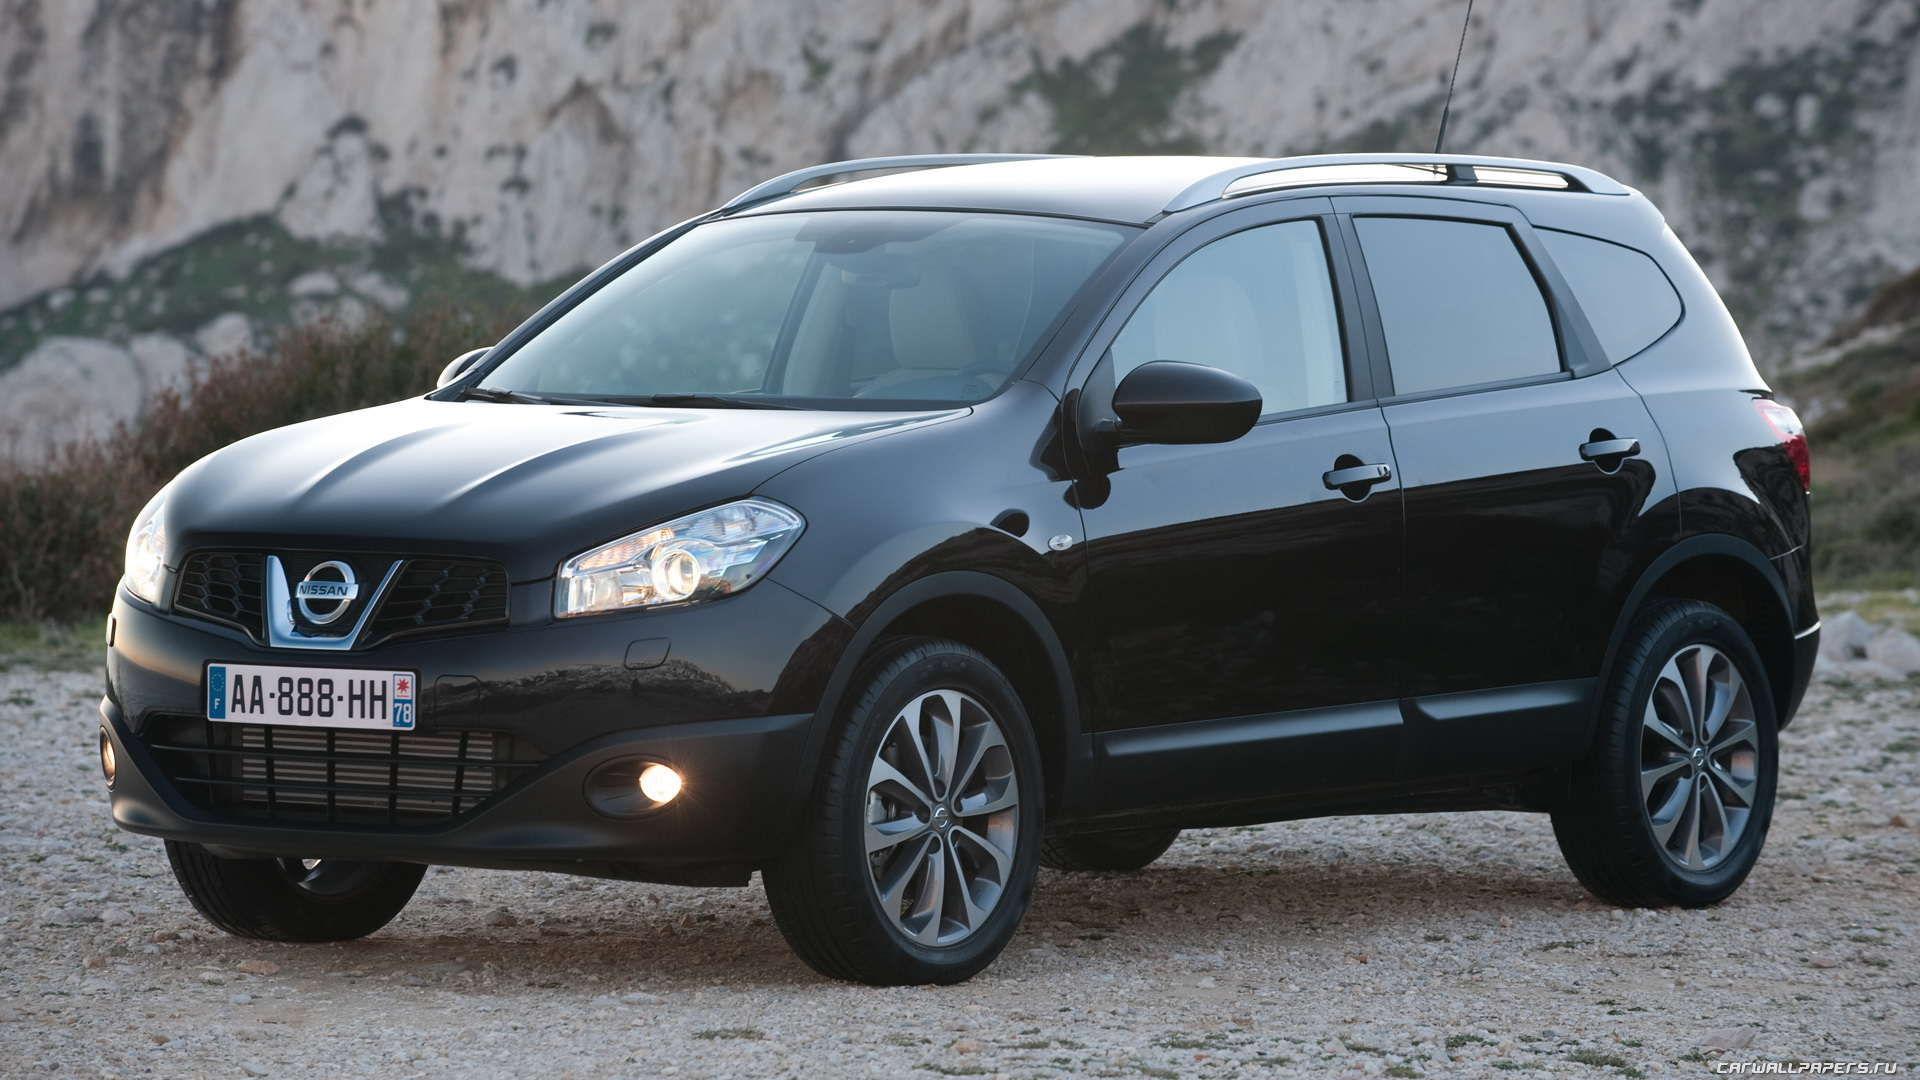 2010 nissan qashqai photos informations articles. Black Bedroom Furniture Sets. Home Design Ideas